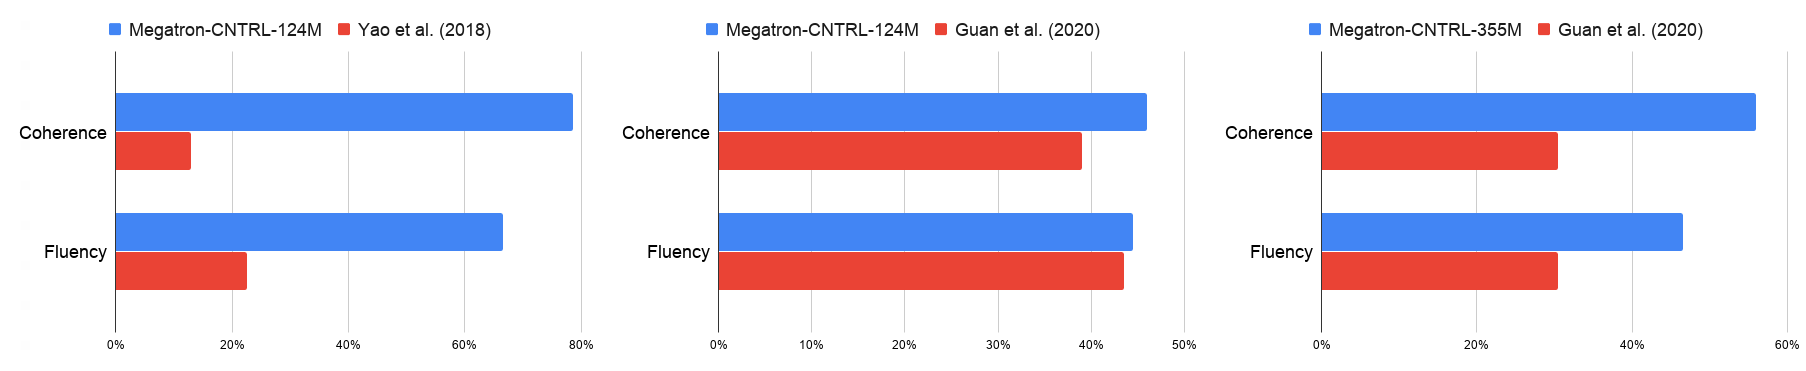 Human evaluations of Megatron-CNTRL show significant improvement compared to current baselines.